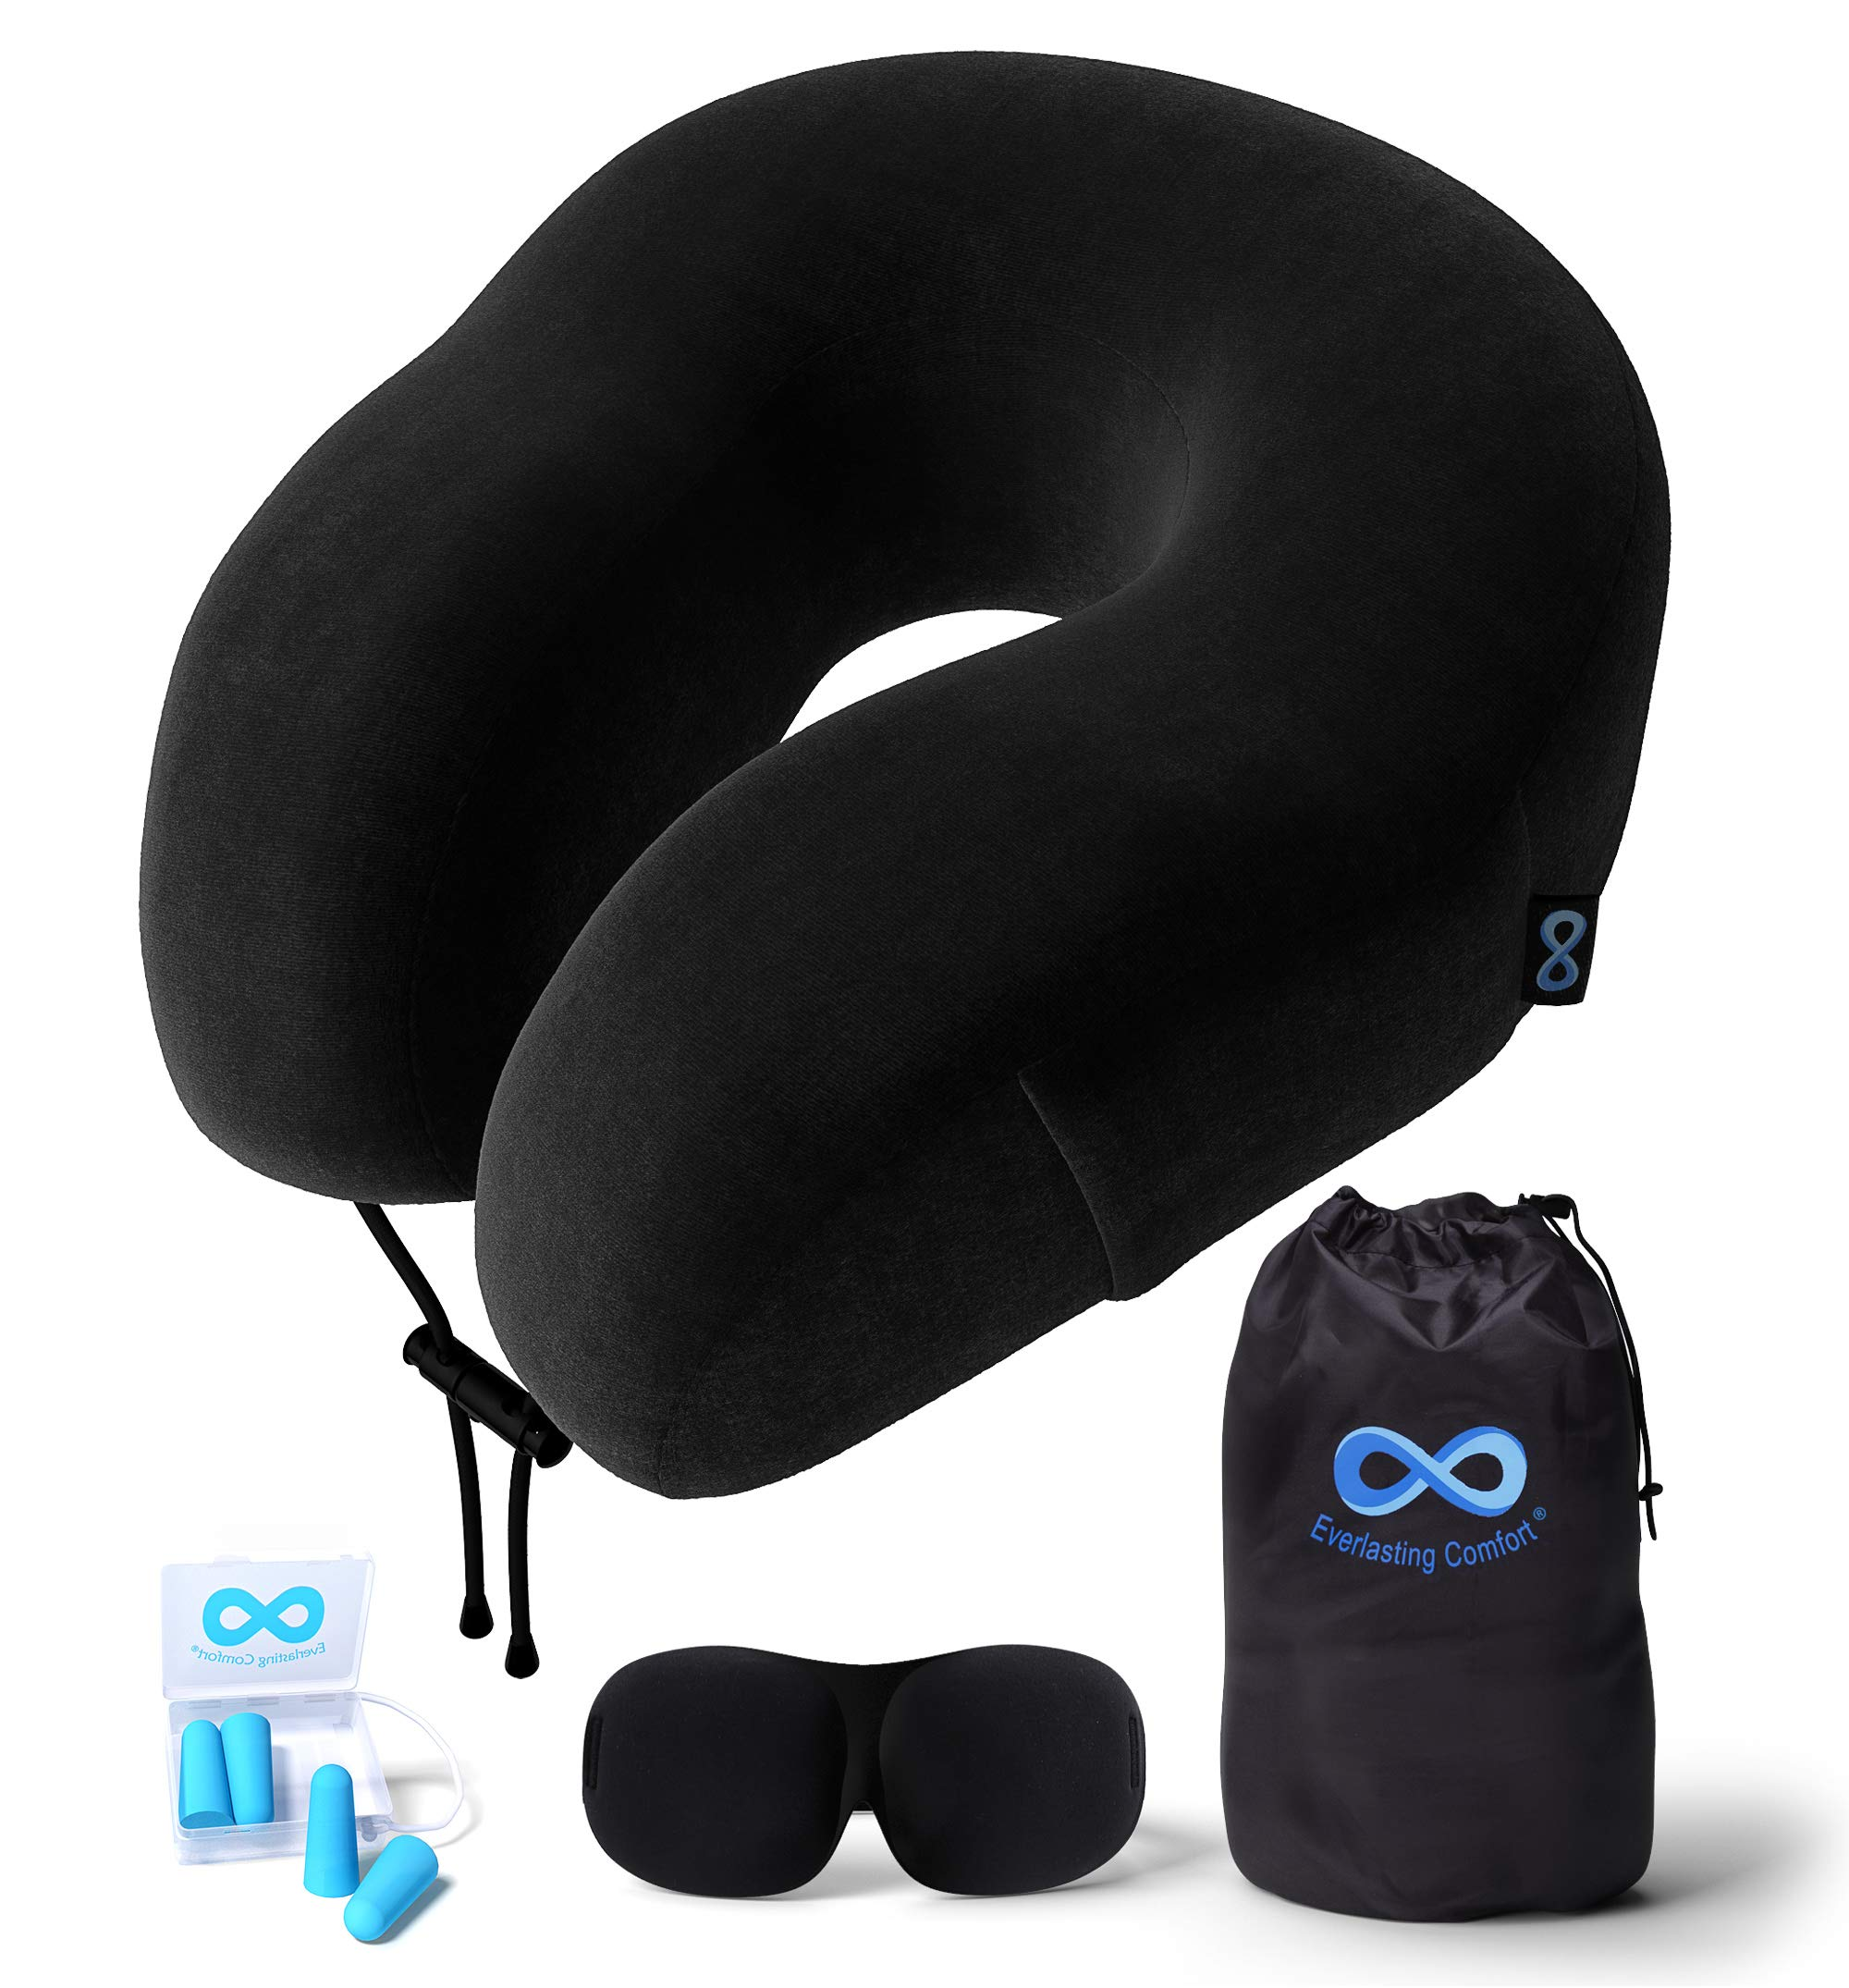 Everlasting Comfort Travel Pillow 100% Pure Memory Foam Neck Pillow with Machine Washable Velour Cover - Airplane Travel Kit with Bag - Includes Eye Masks and Earplugs (Black) by Everlasting Comfort